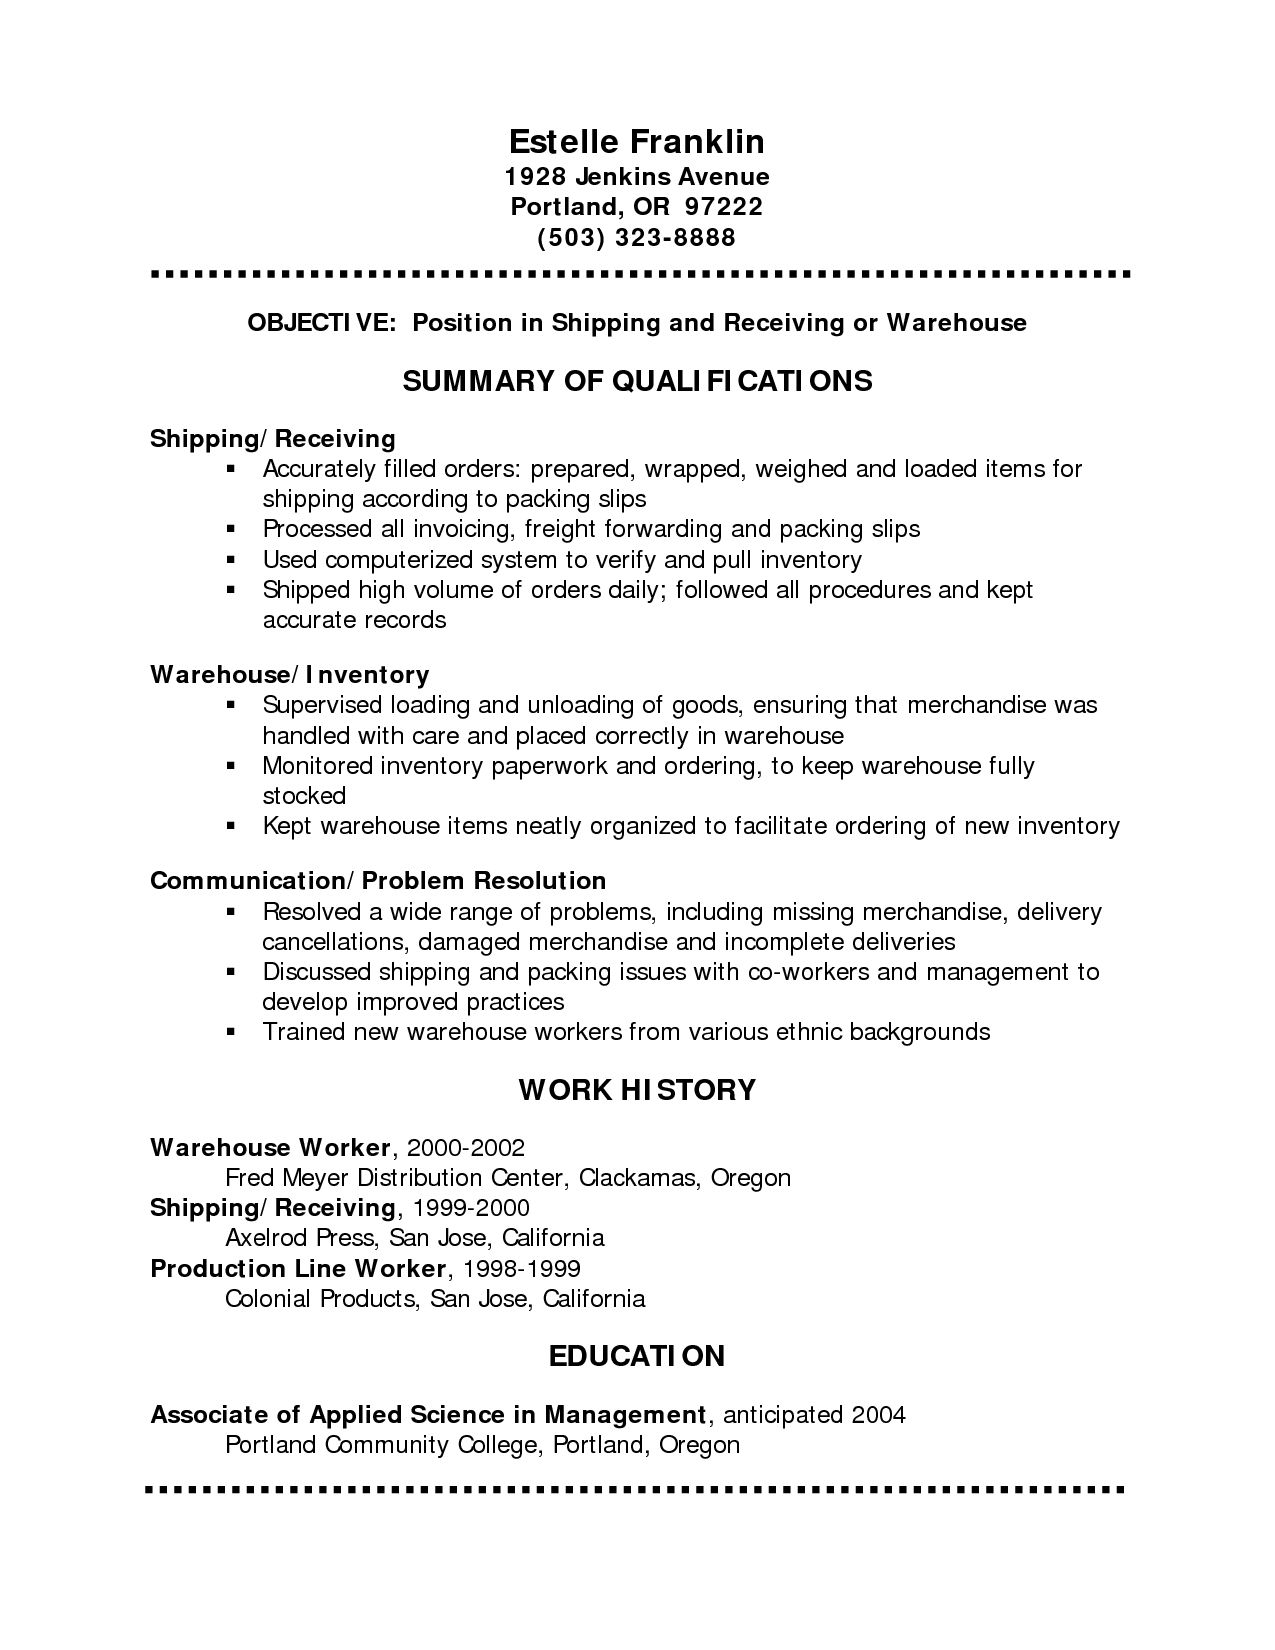 Basic Resume Outline Template Your Guide The Best Free Resume Templates Good Samples Examples